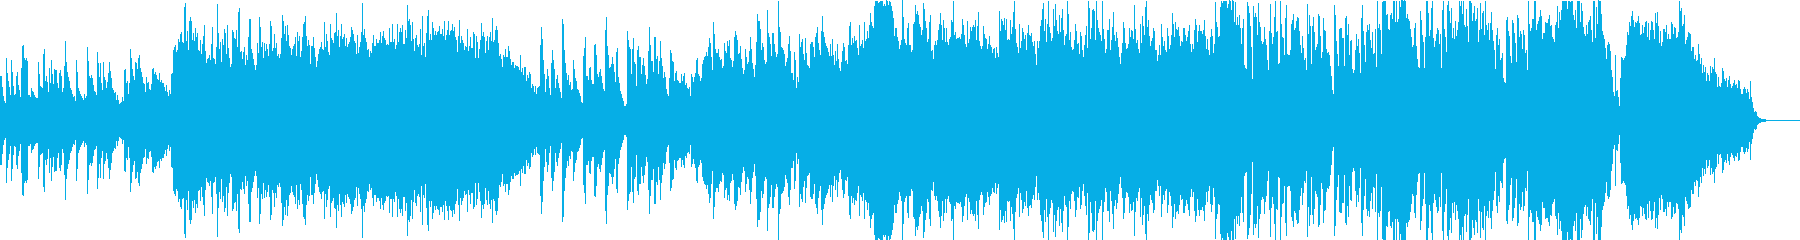 Japanese-style BGM with the sound of a koto's reproduced waveform